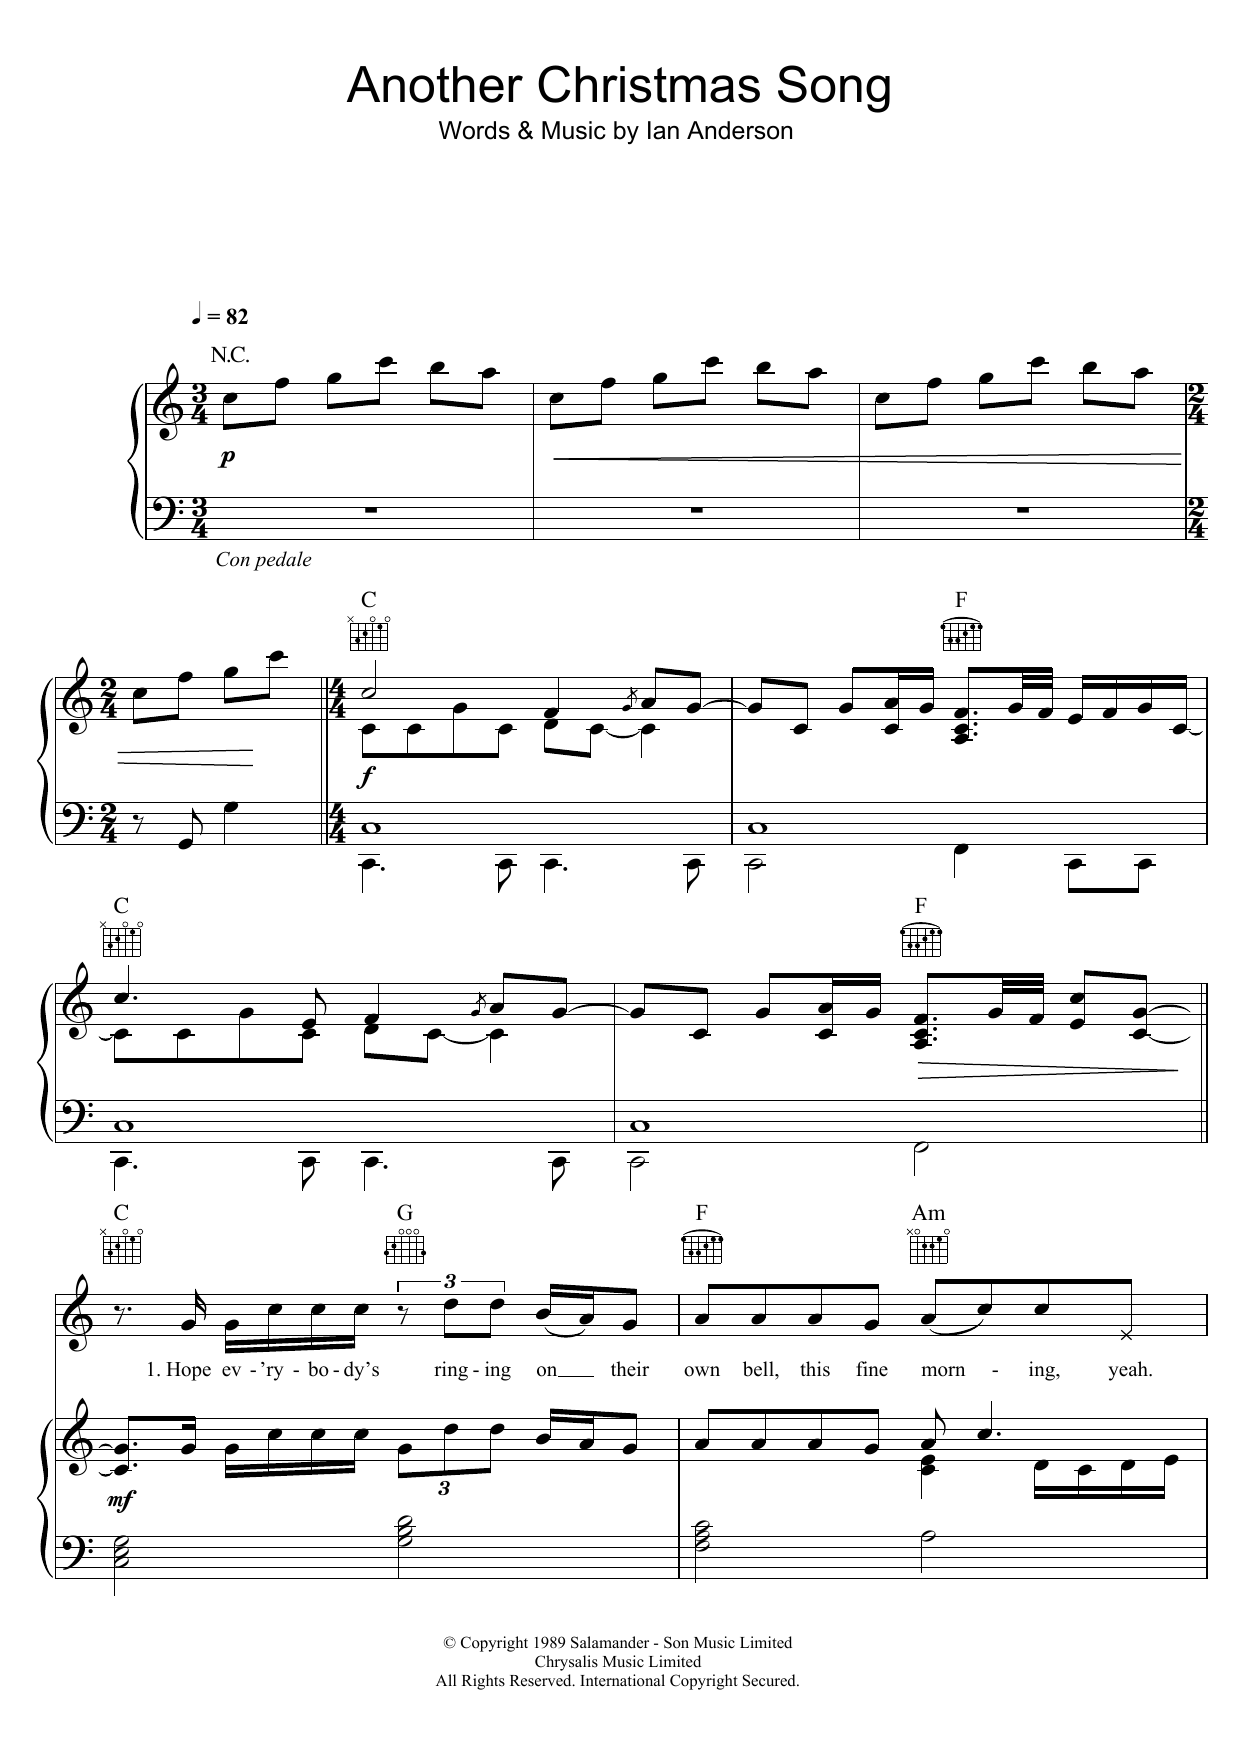 Jethro Tull - Another Christmas Song at Stanton\'s Sheet Music